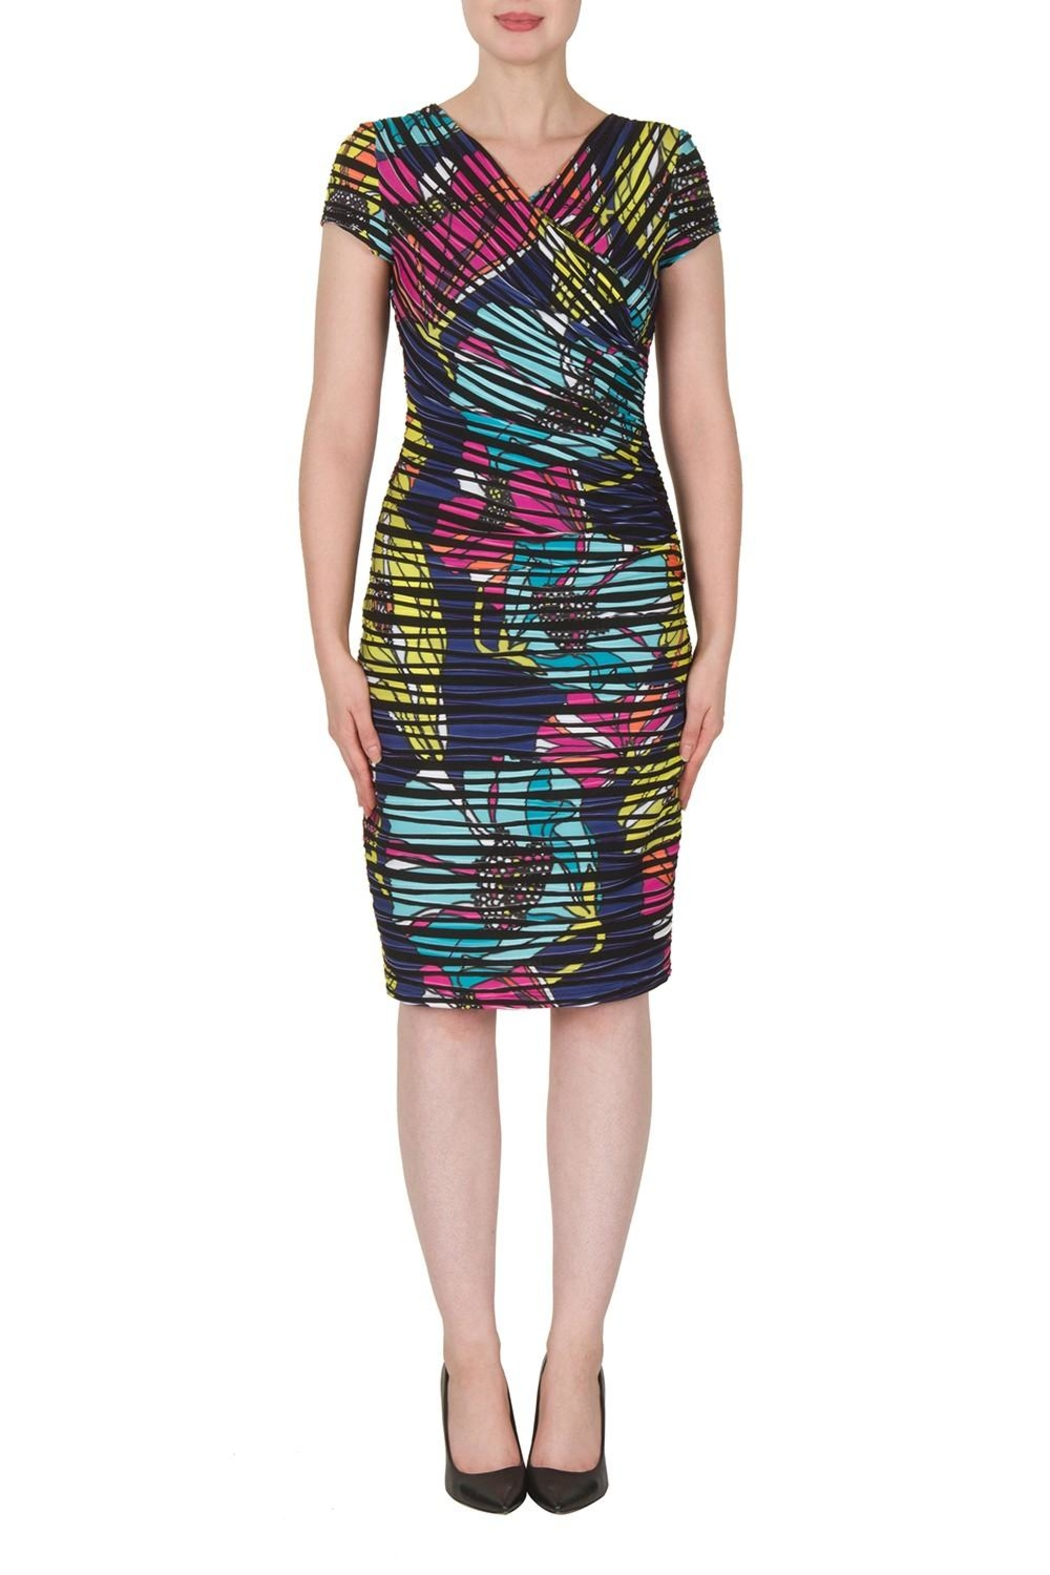 Joseph Ribkoff Faux Wrap Print Dress - Main Image